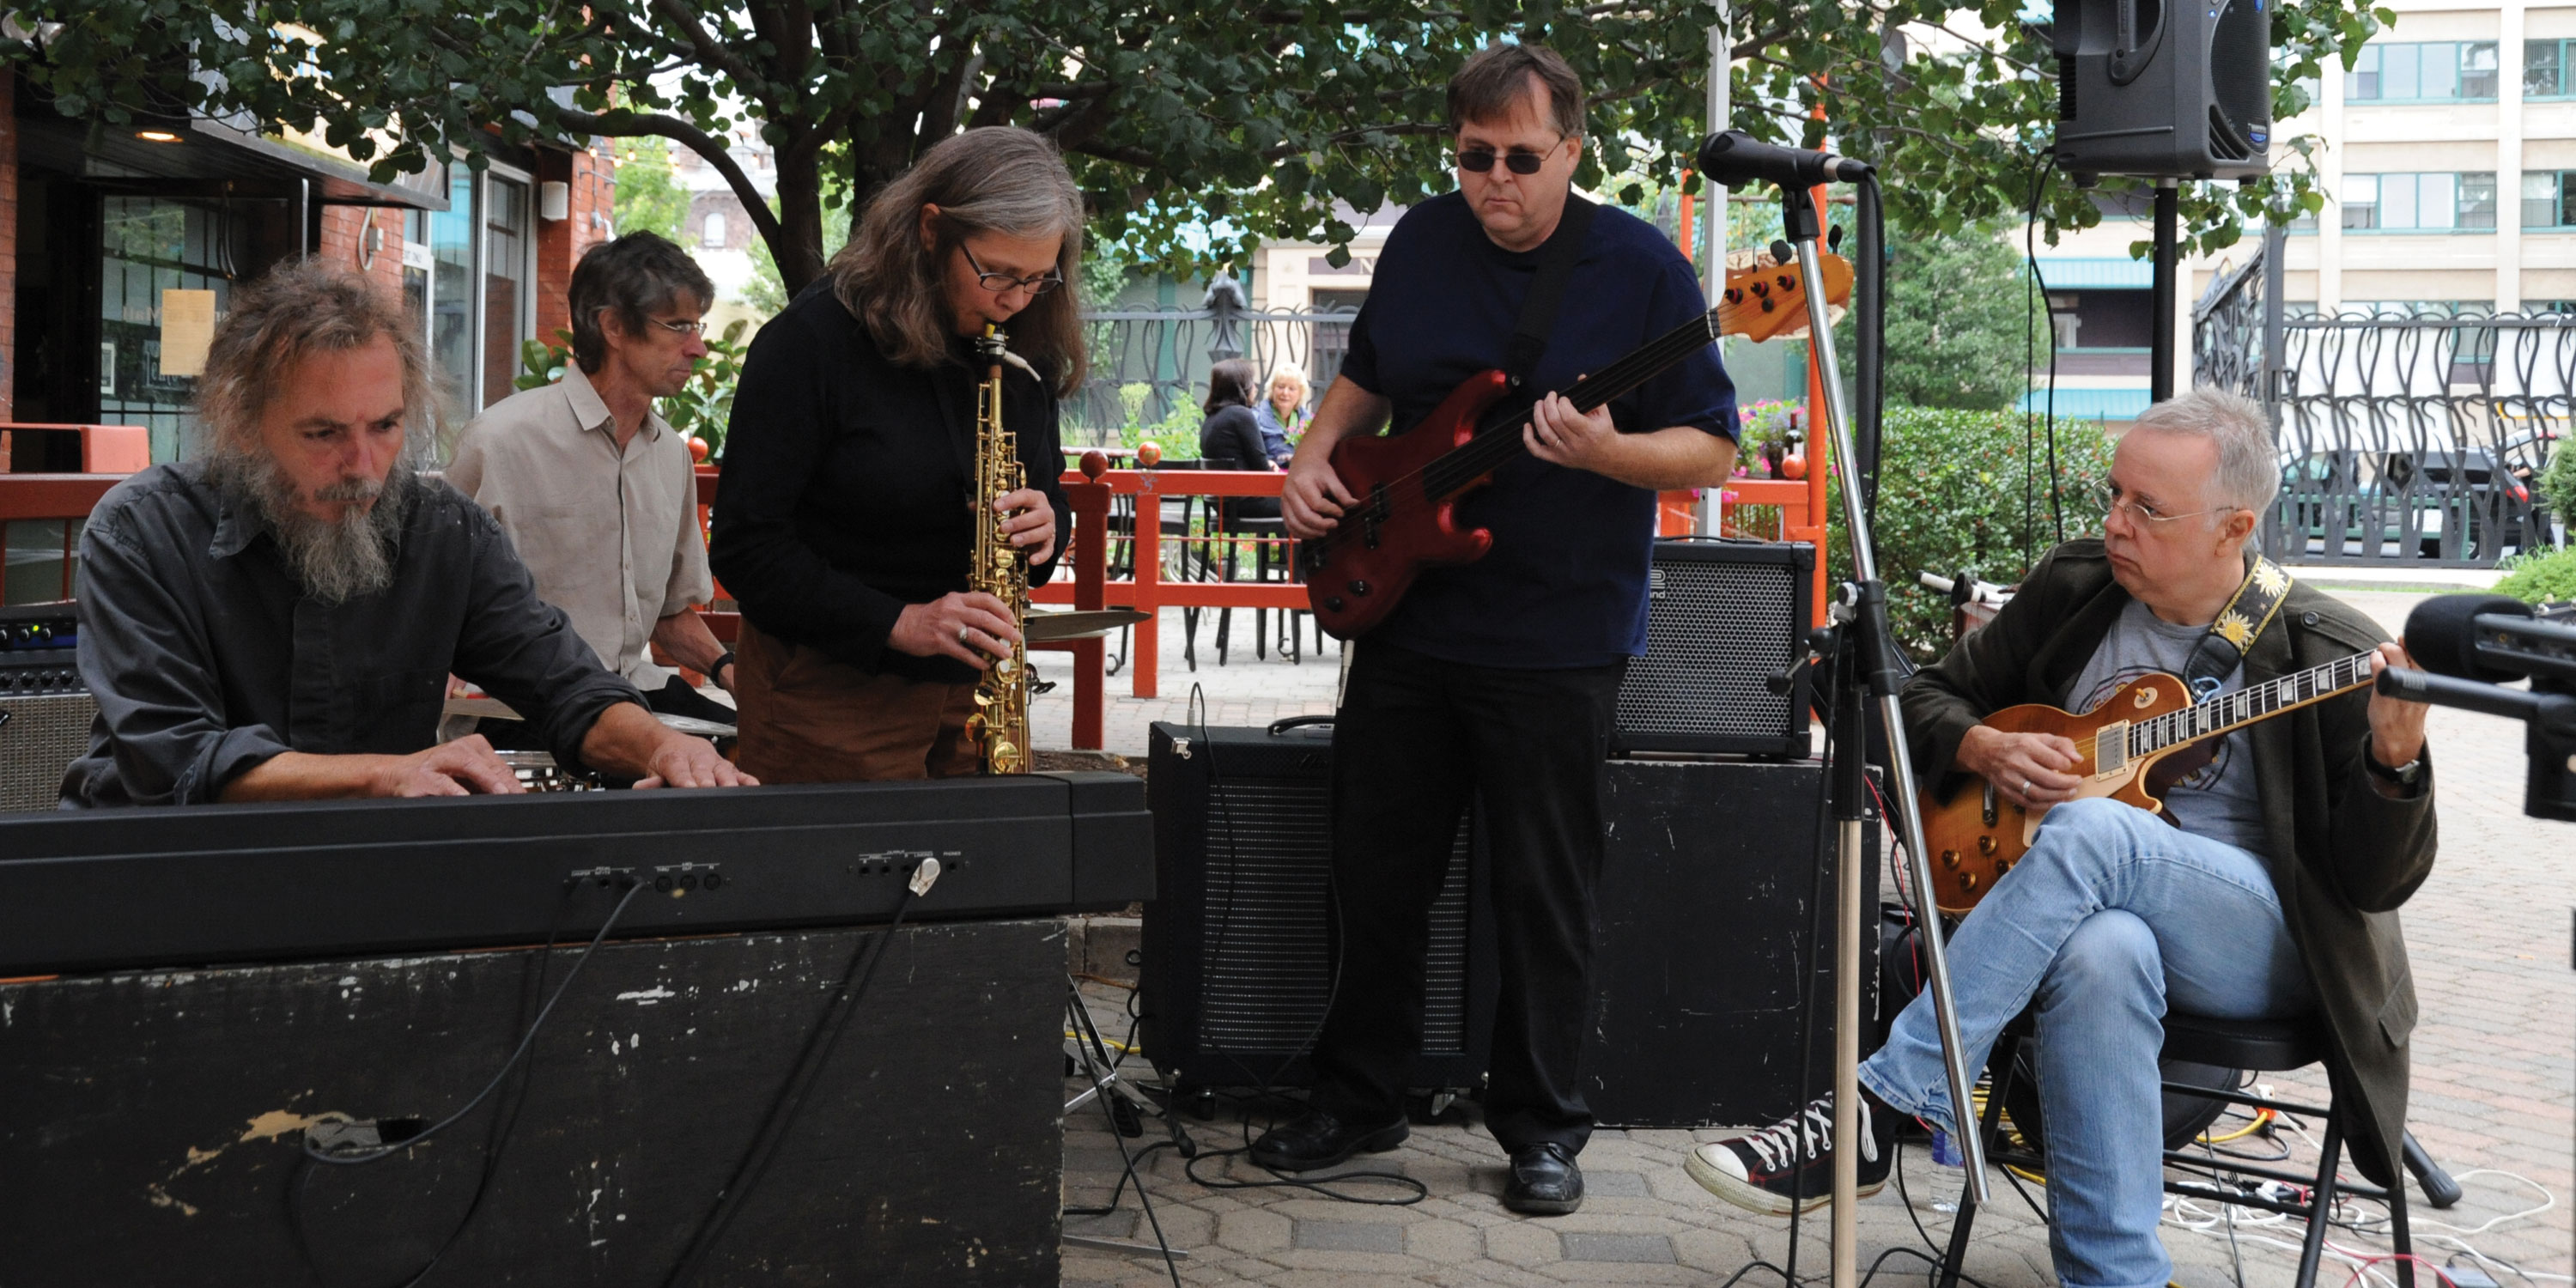 Margaret Explosion with Pete LaBonne performing live at Village Gate courtyard. Photo by Brian Peterson.